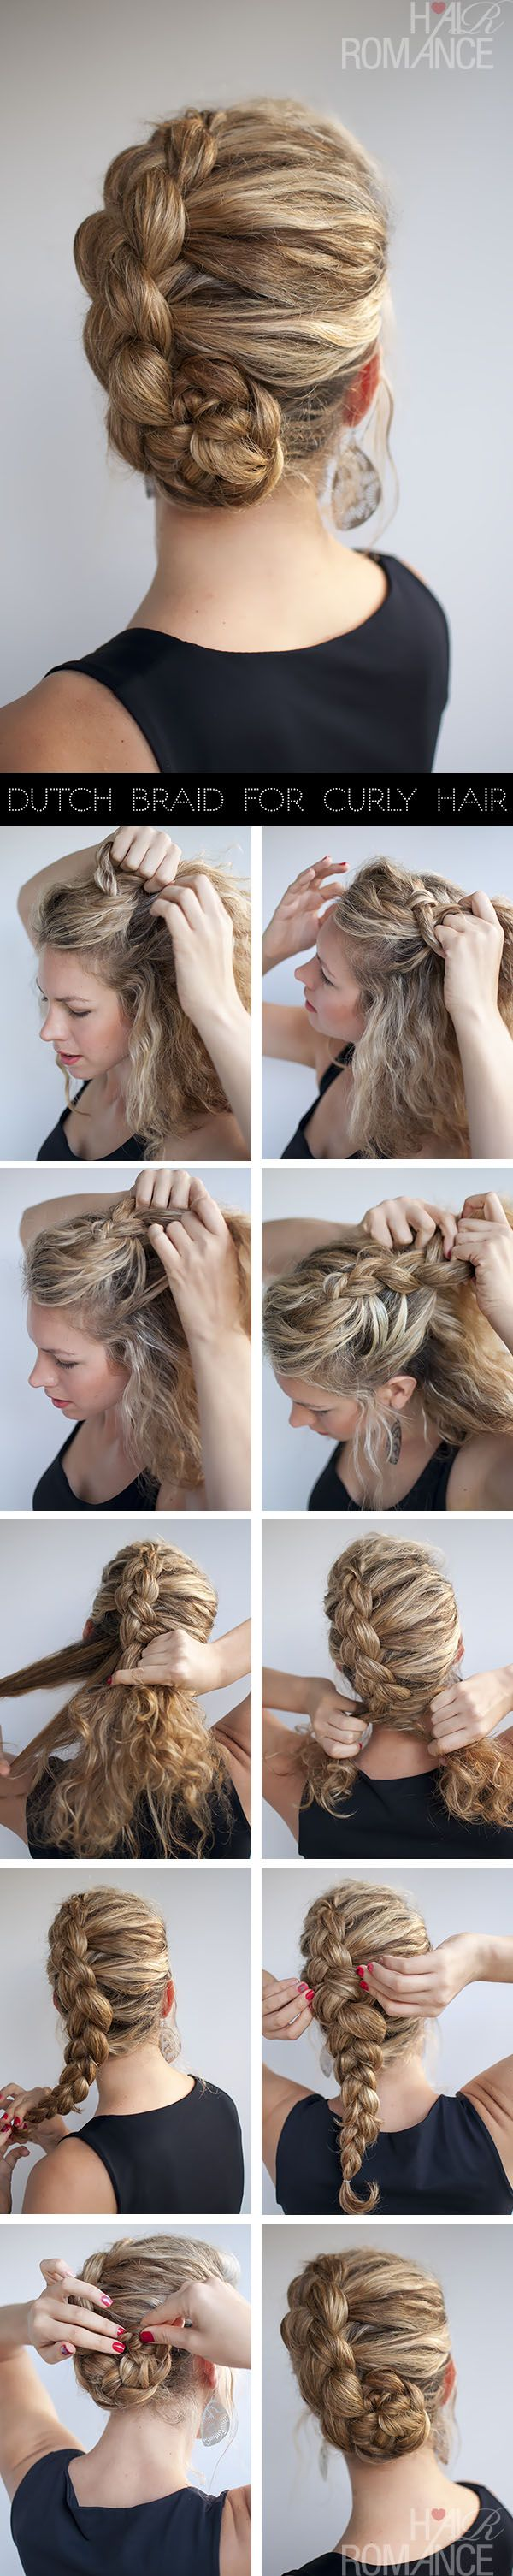 Dutch Braided updo tutorial for curly hair